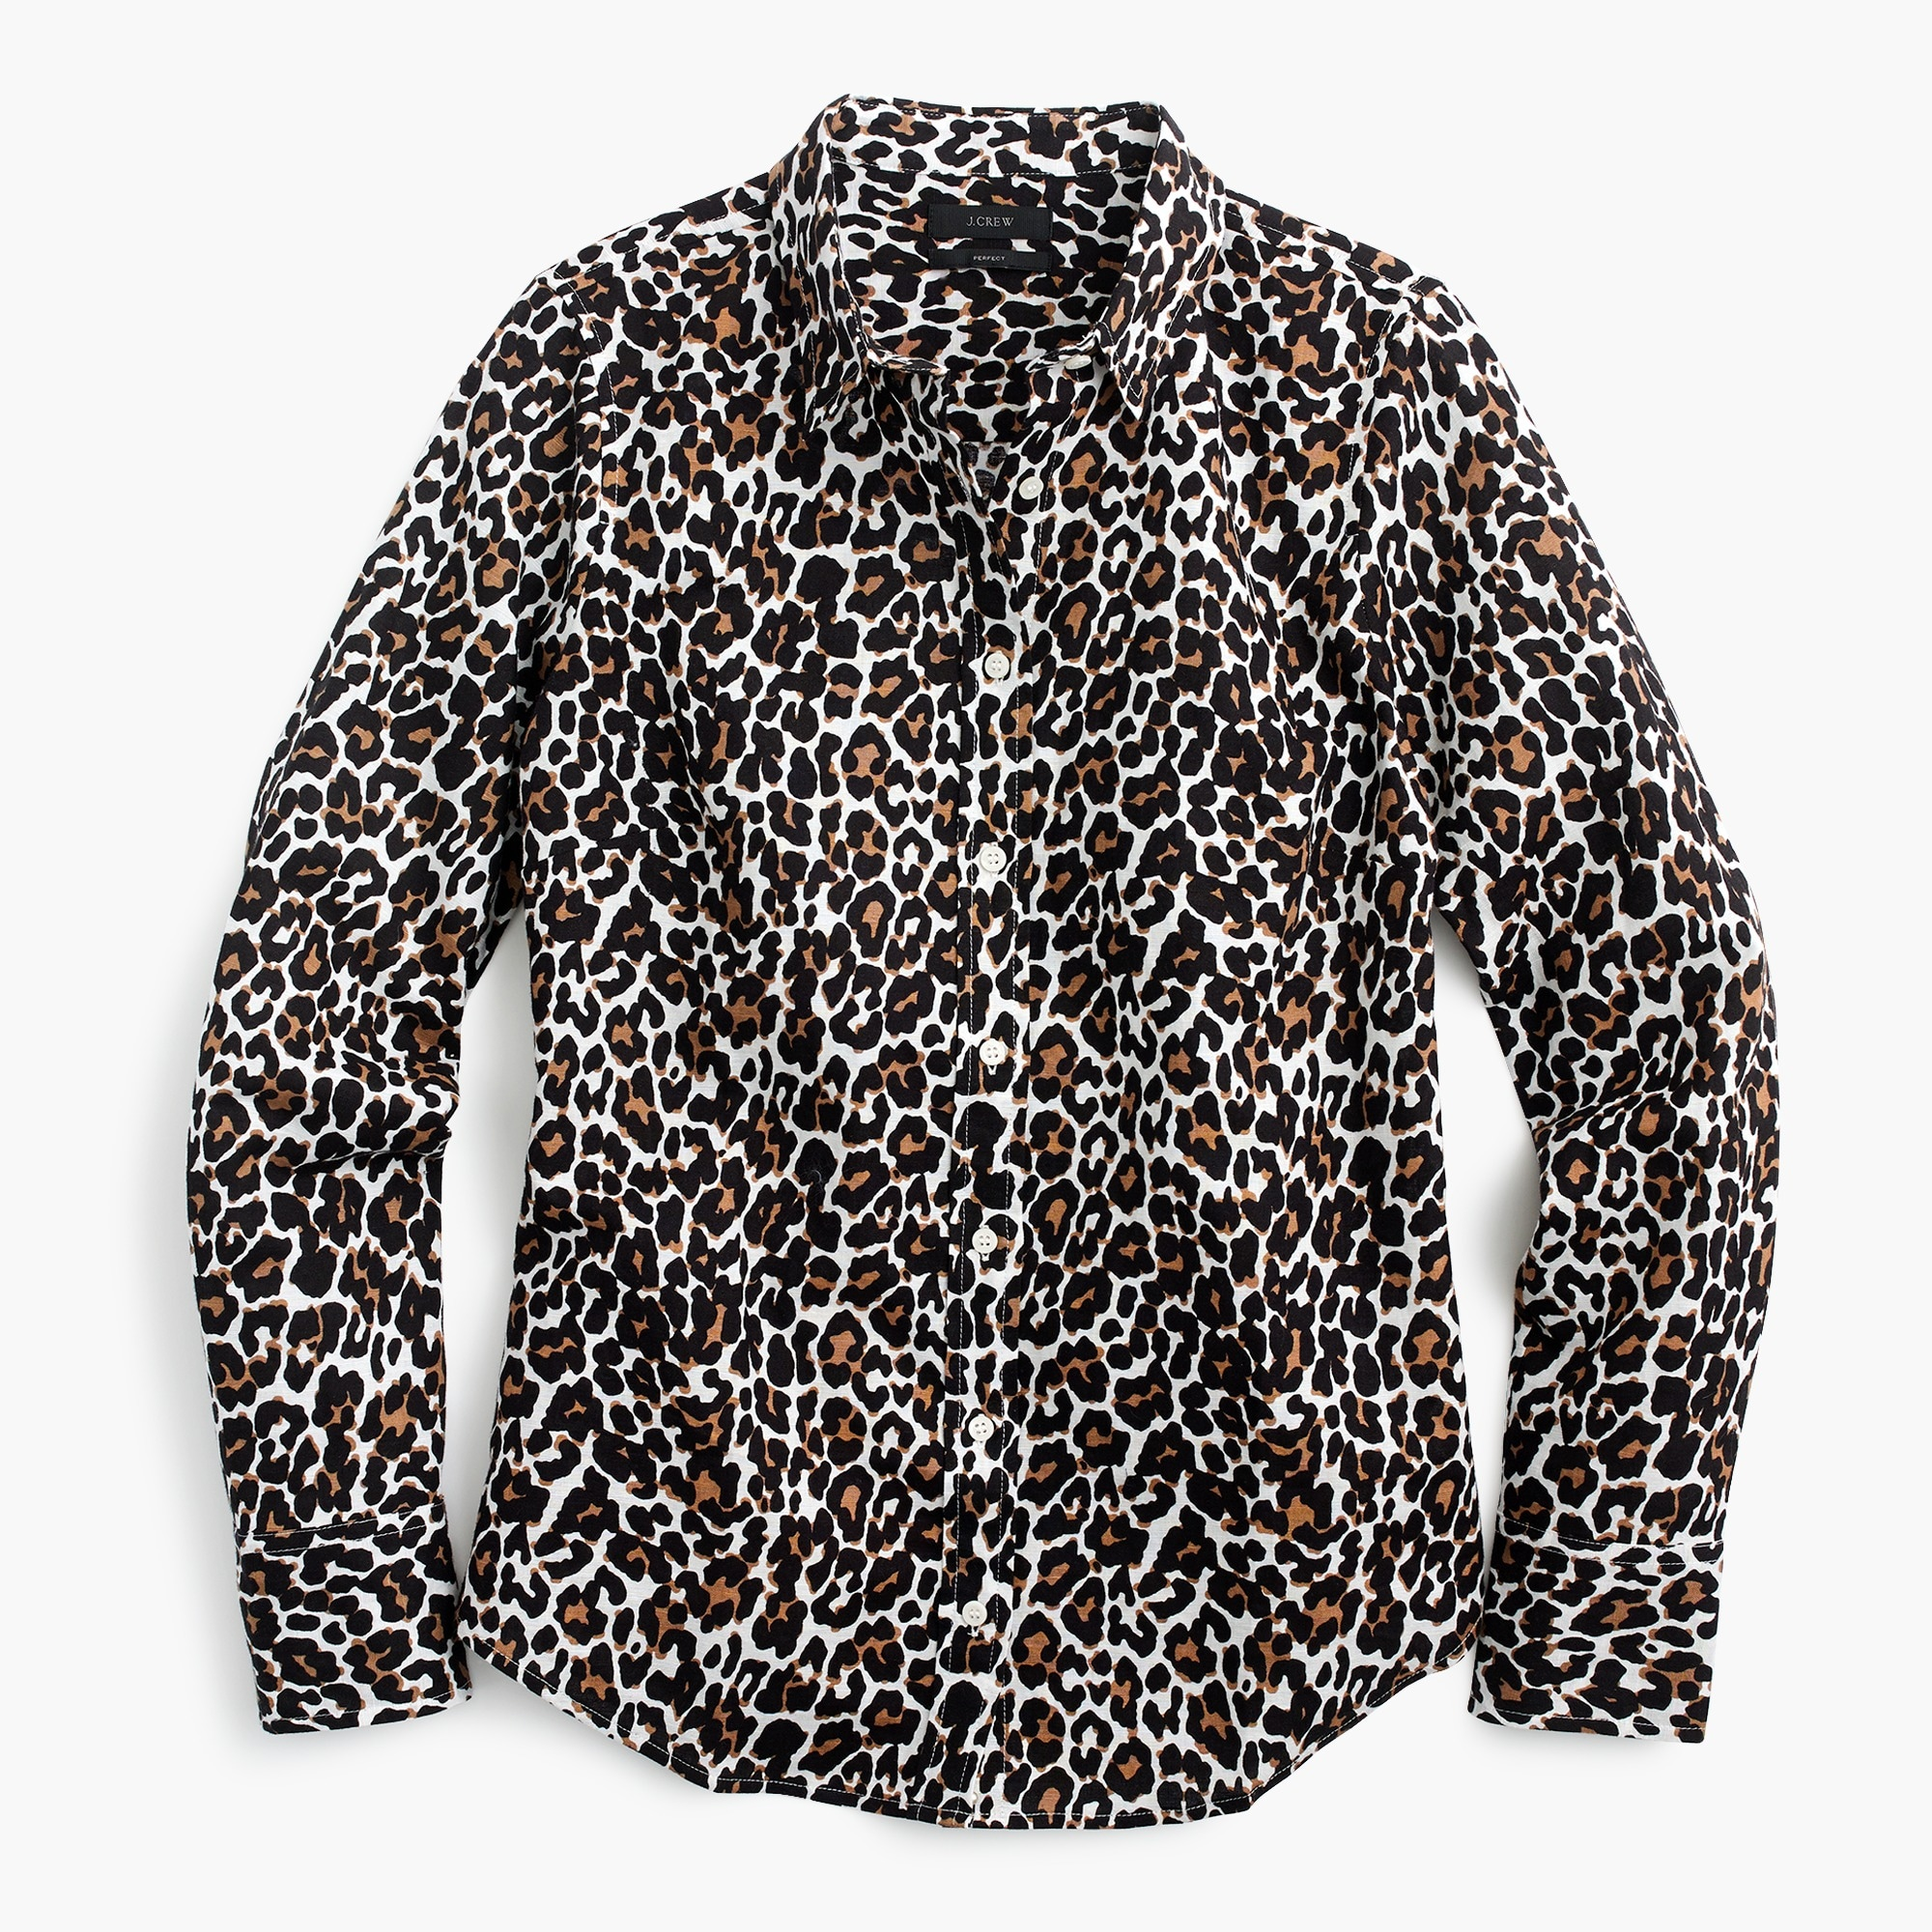 Image 2 for Petite slim perfect shirt in leopard print